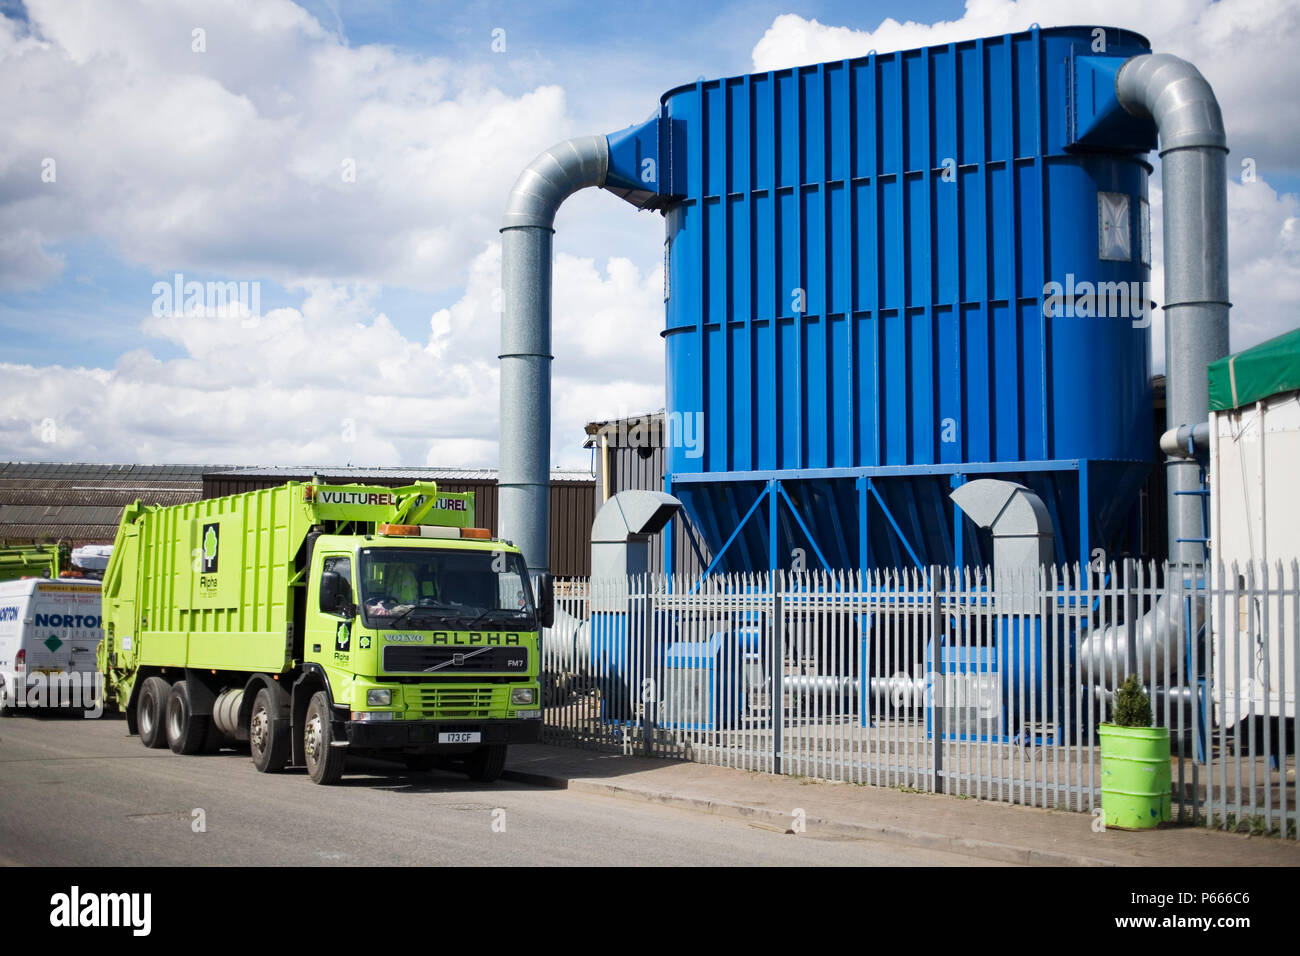 Waste Disposal Site Stock Photos Amp Waste Disposal Site